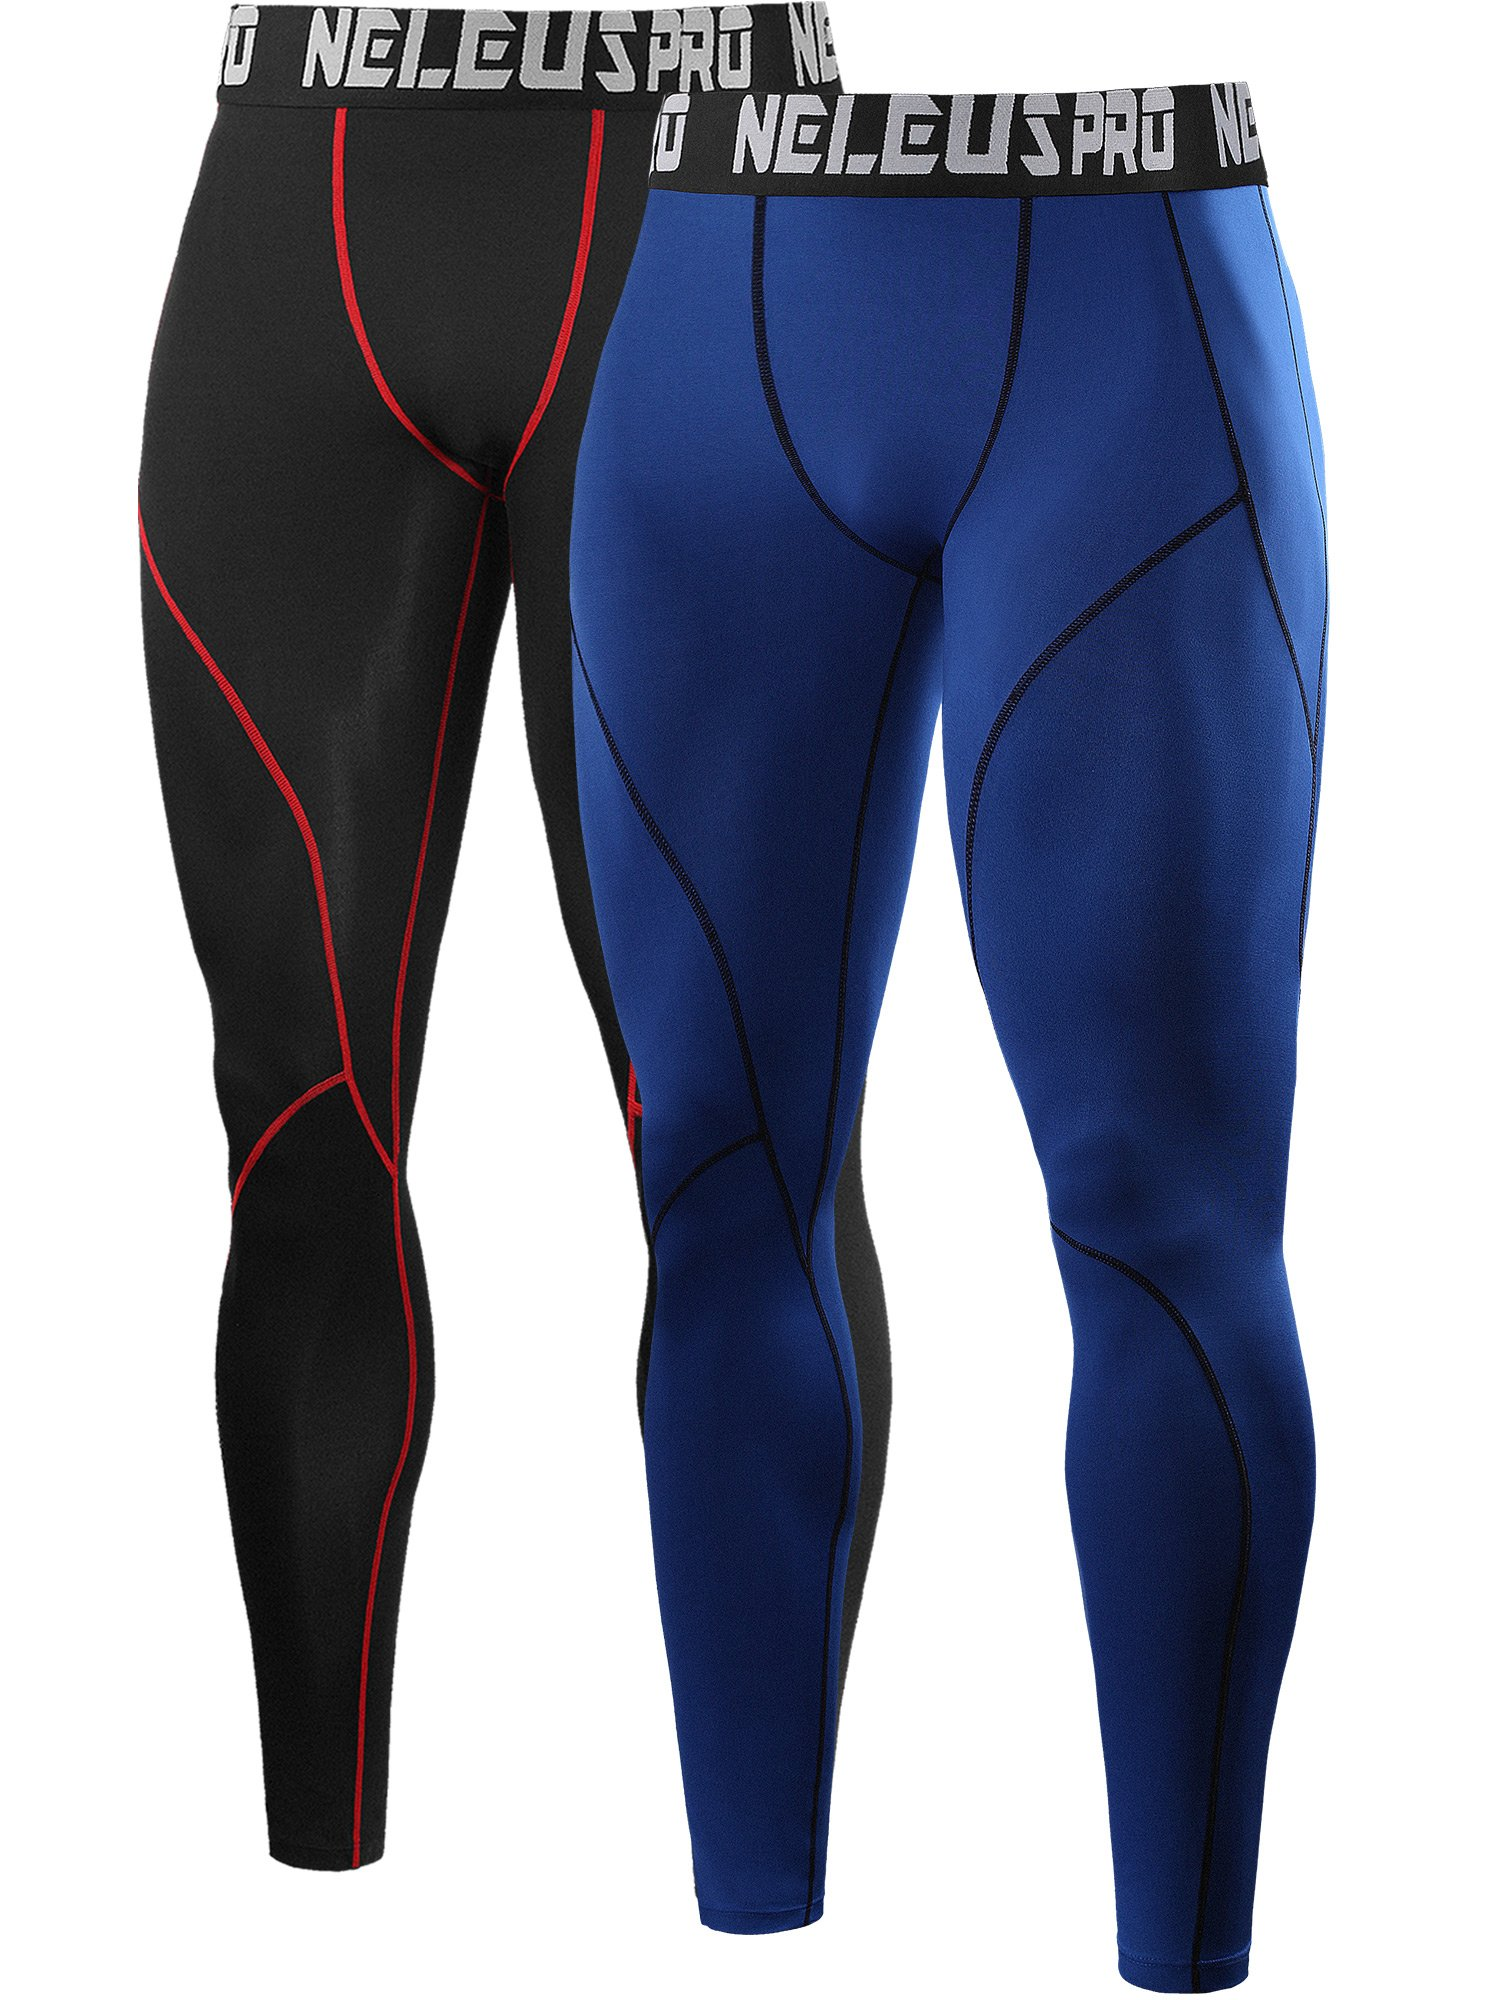 Neleus Men's 2 Pack Compression Base Layer Tight Pants,6013,Black (Red Stripe),Blue,US S,EU M